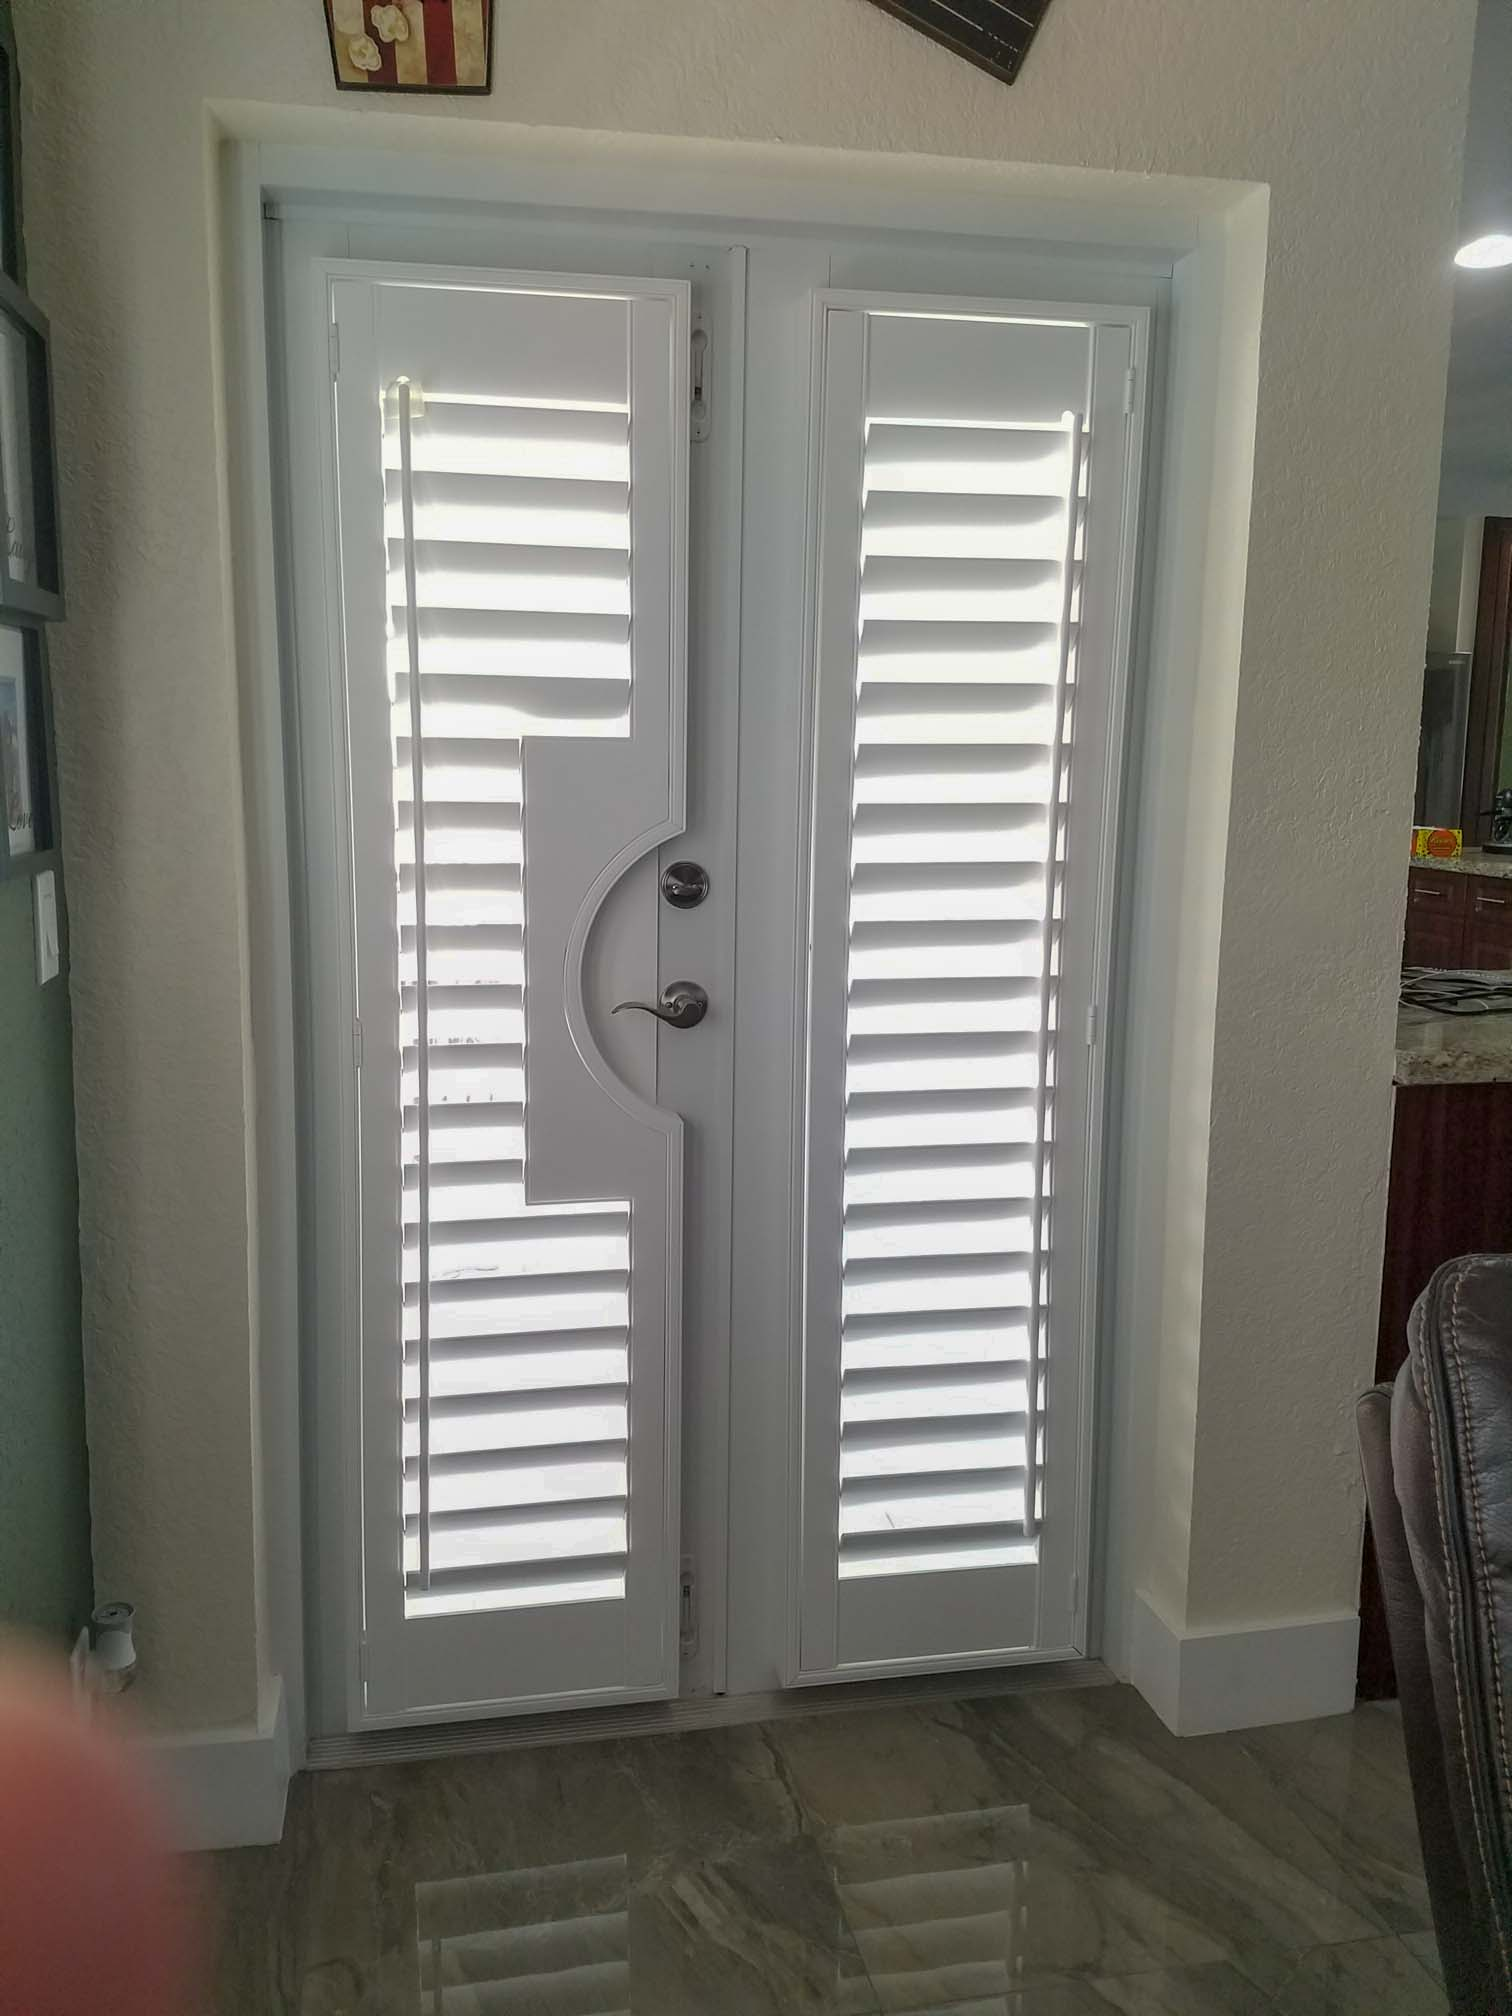 plantation shutters gallery PLANTATION SHUTTERS GALLERY 20171013 140820